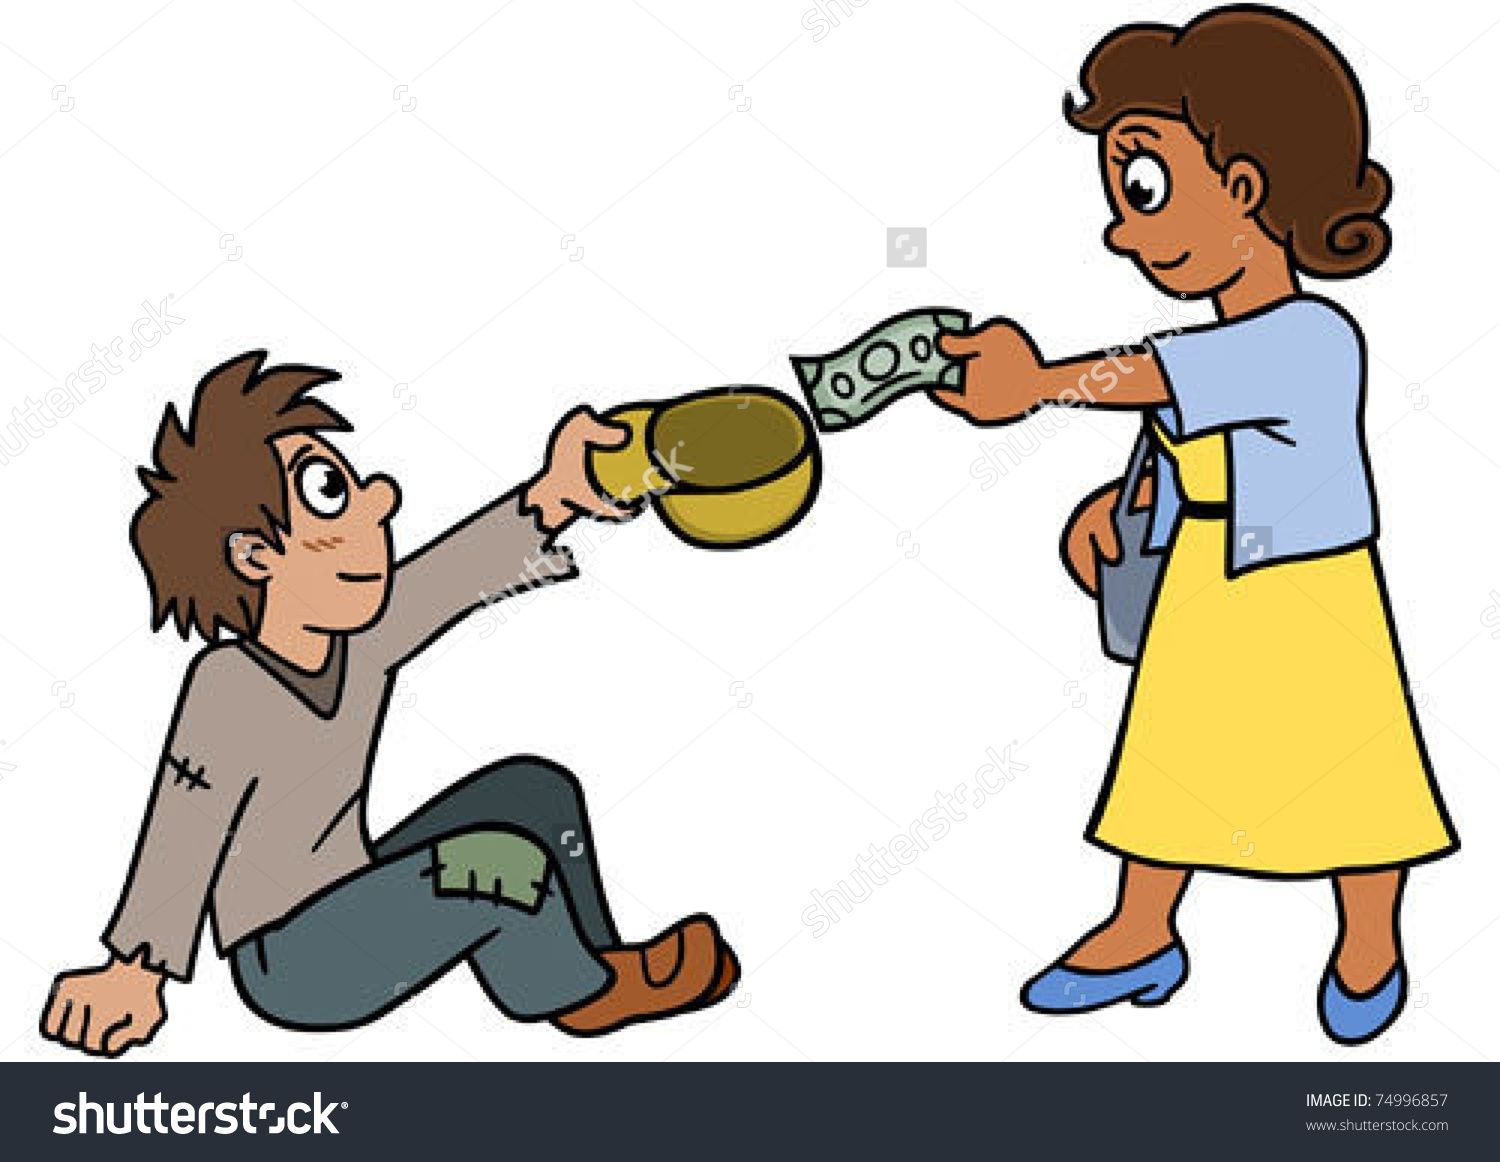 Children poverty clipart